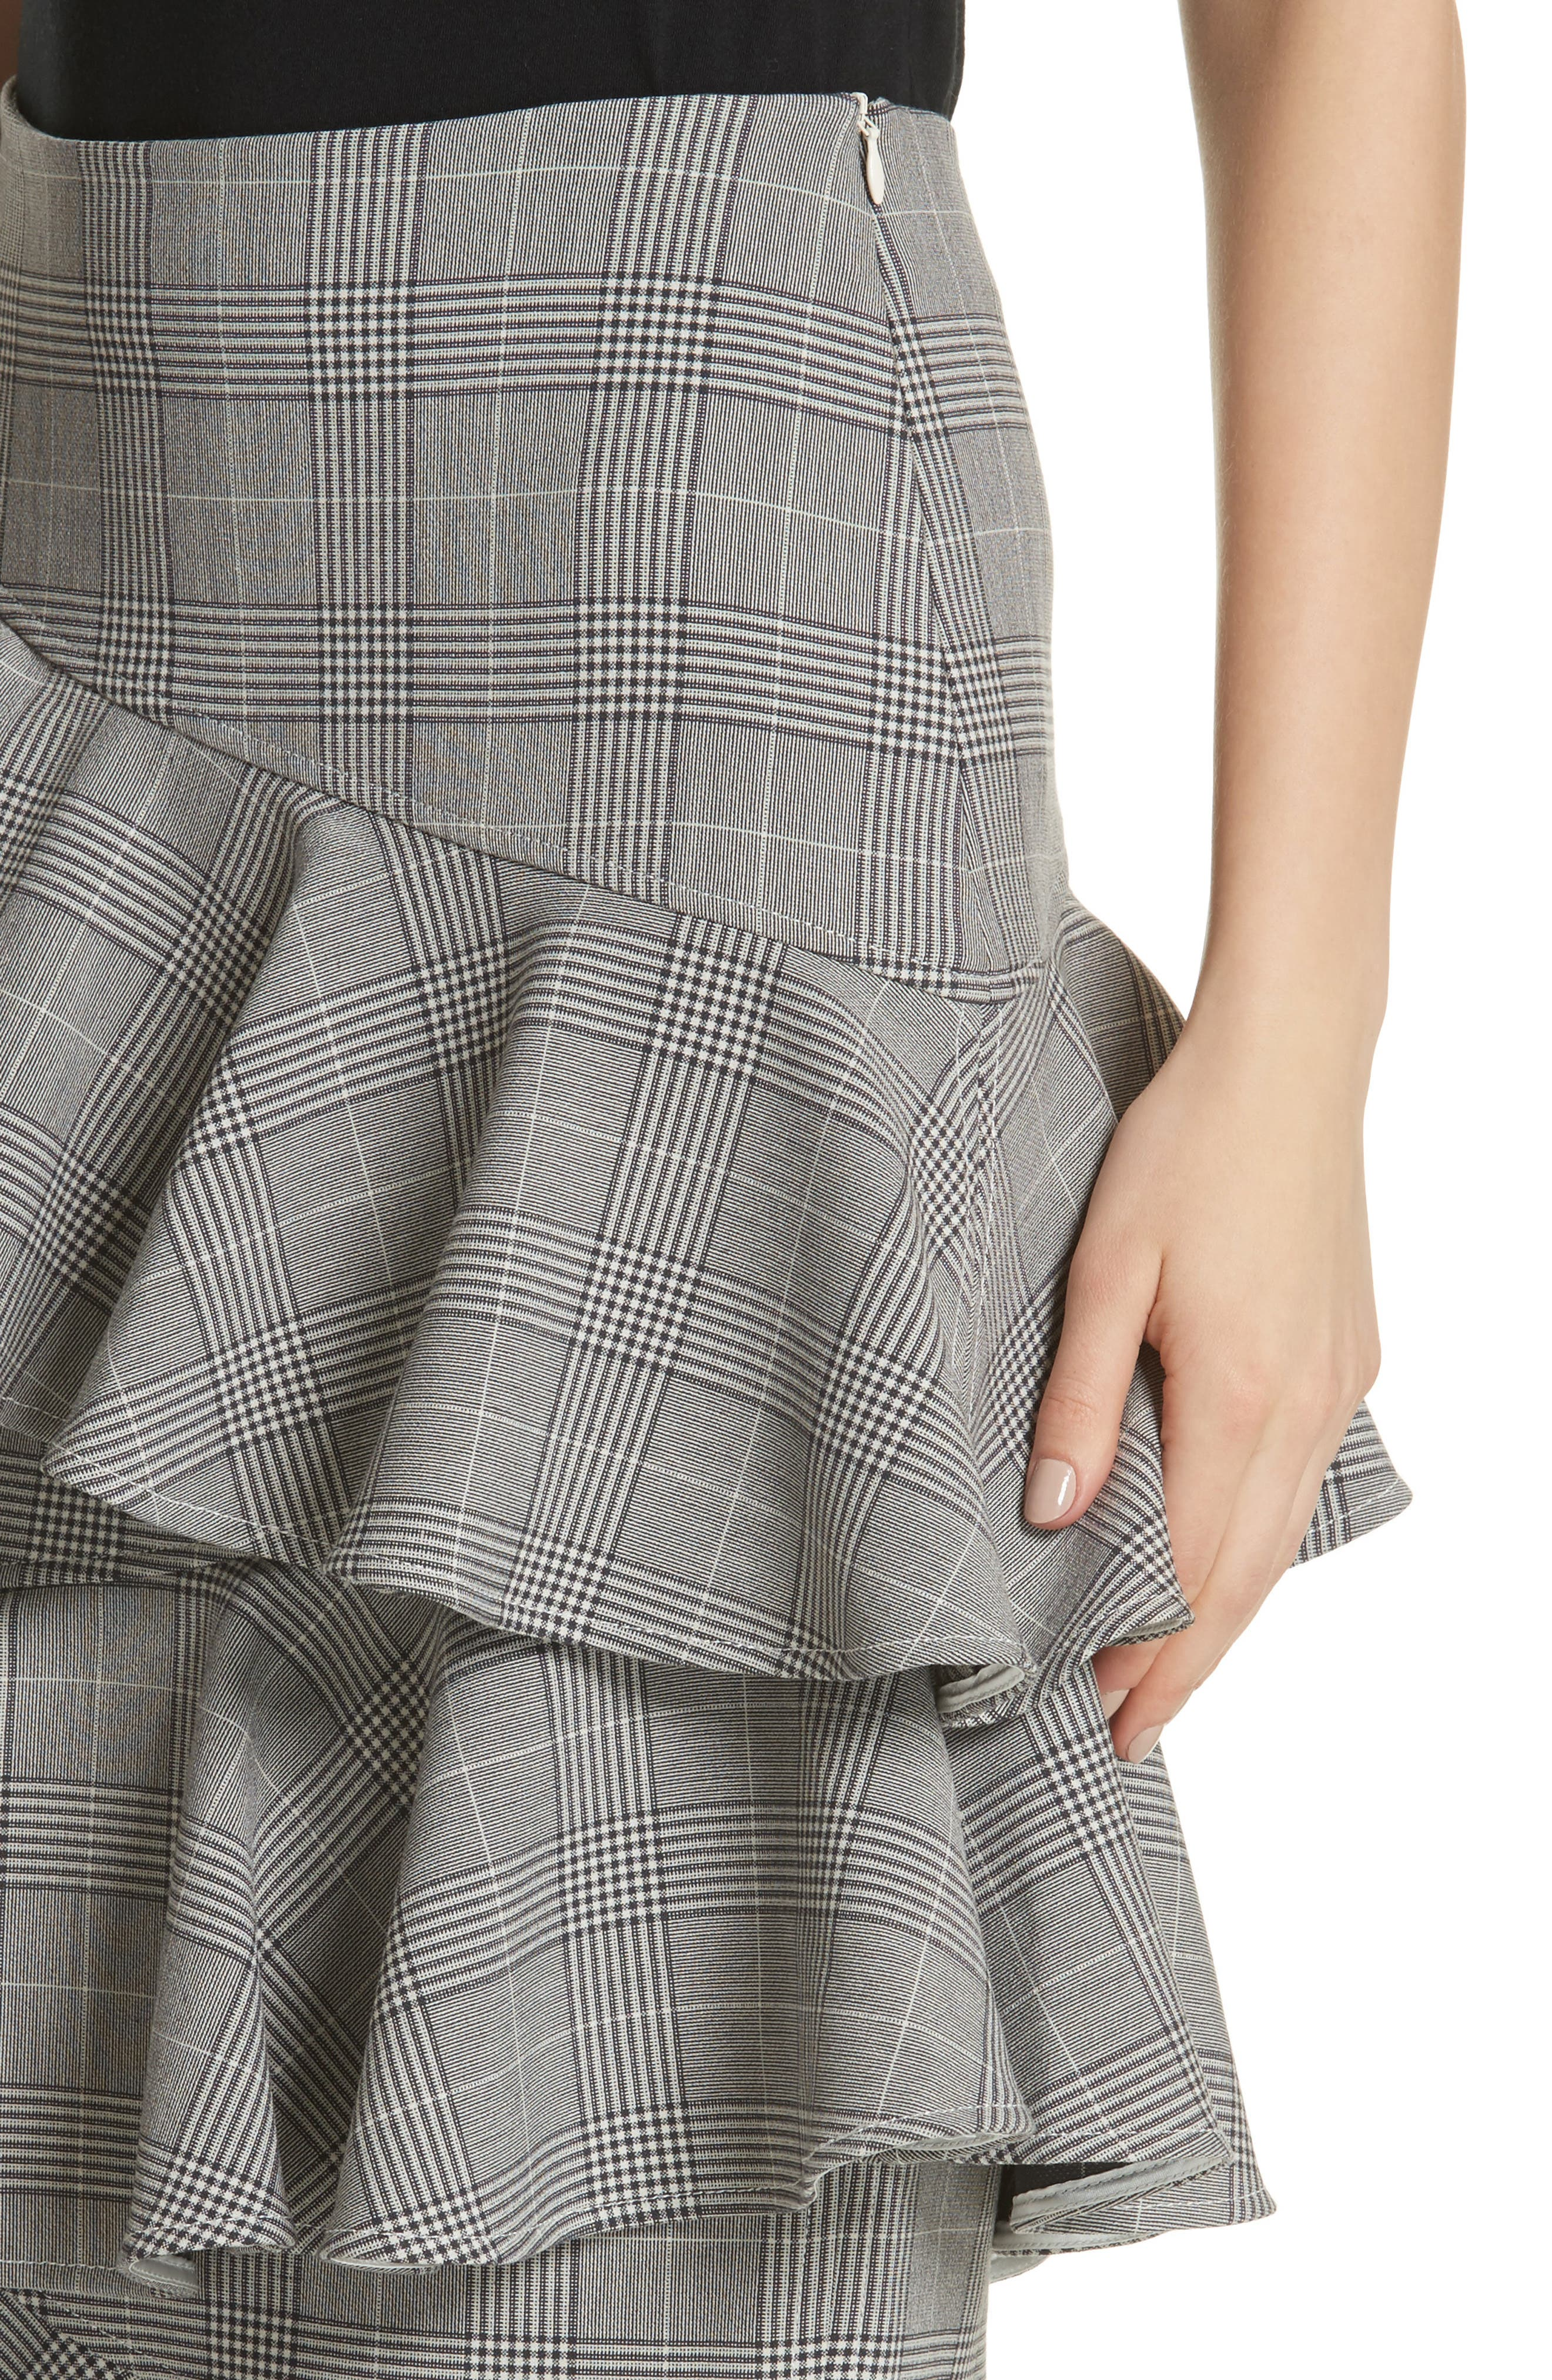 Garvey Plaid Ruffle Tier Skirt,                             Alternate thumbnail 4, color,                             Paloma Melange